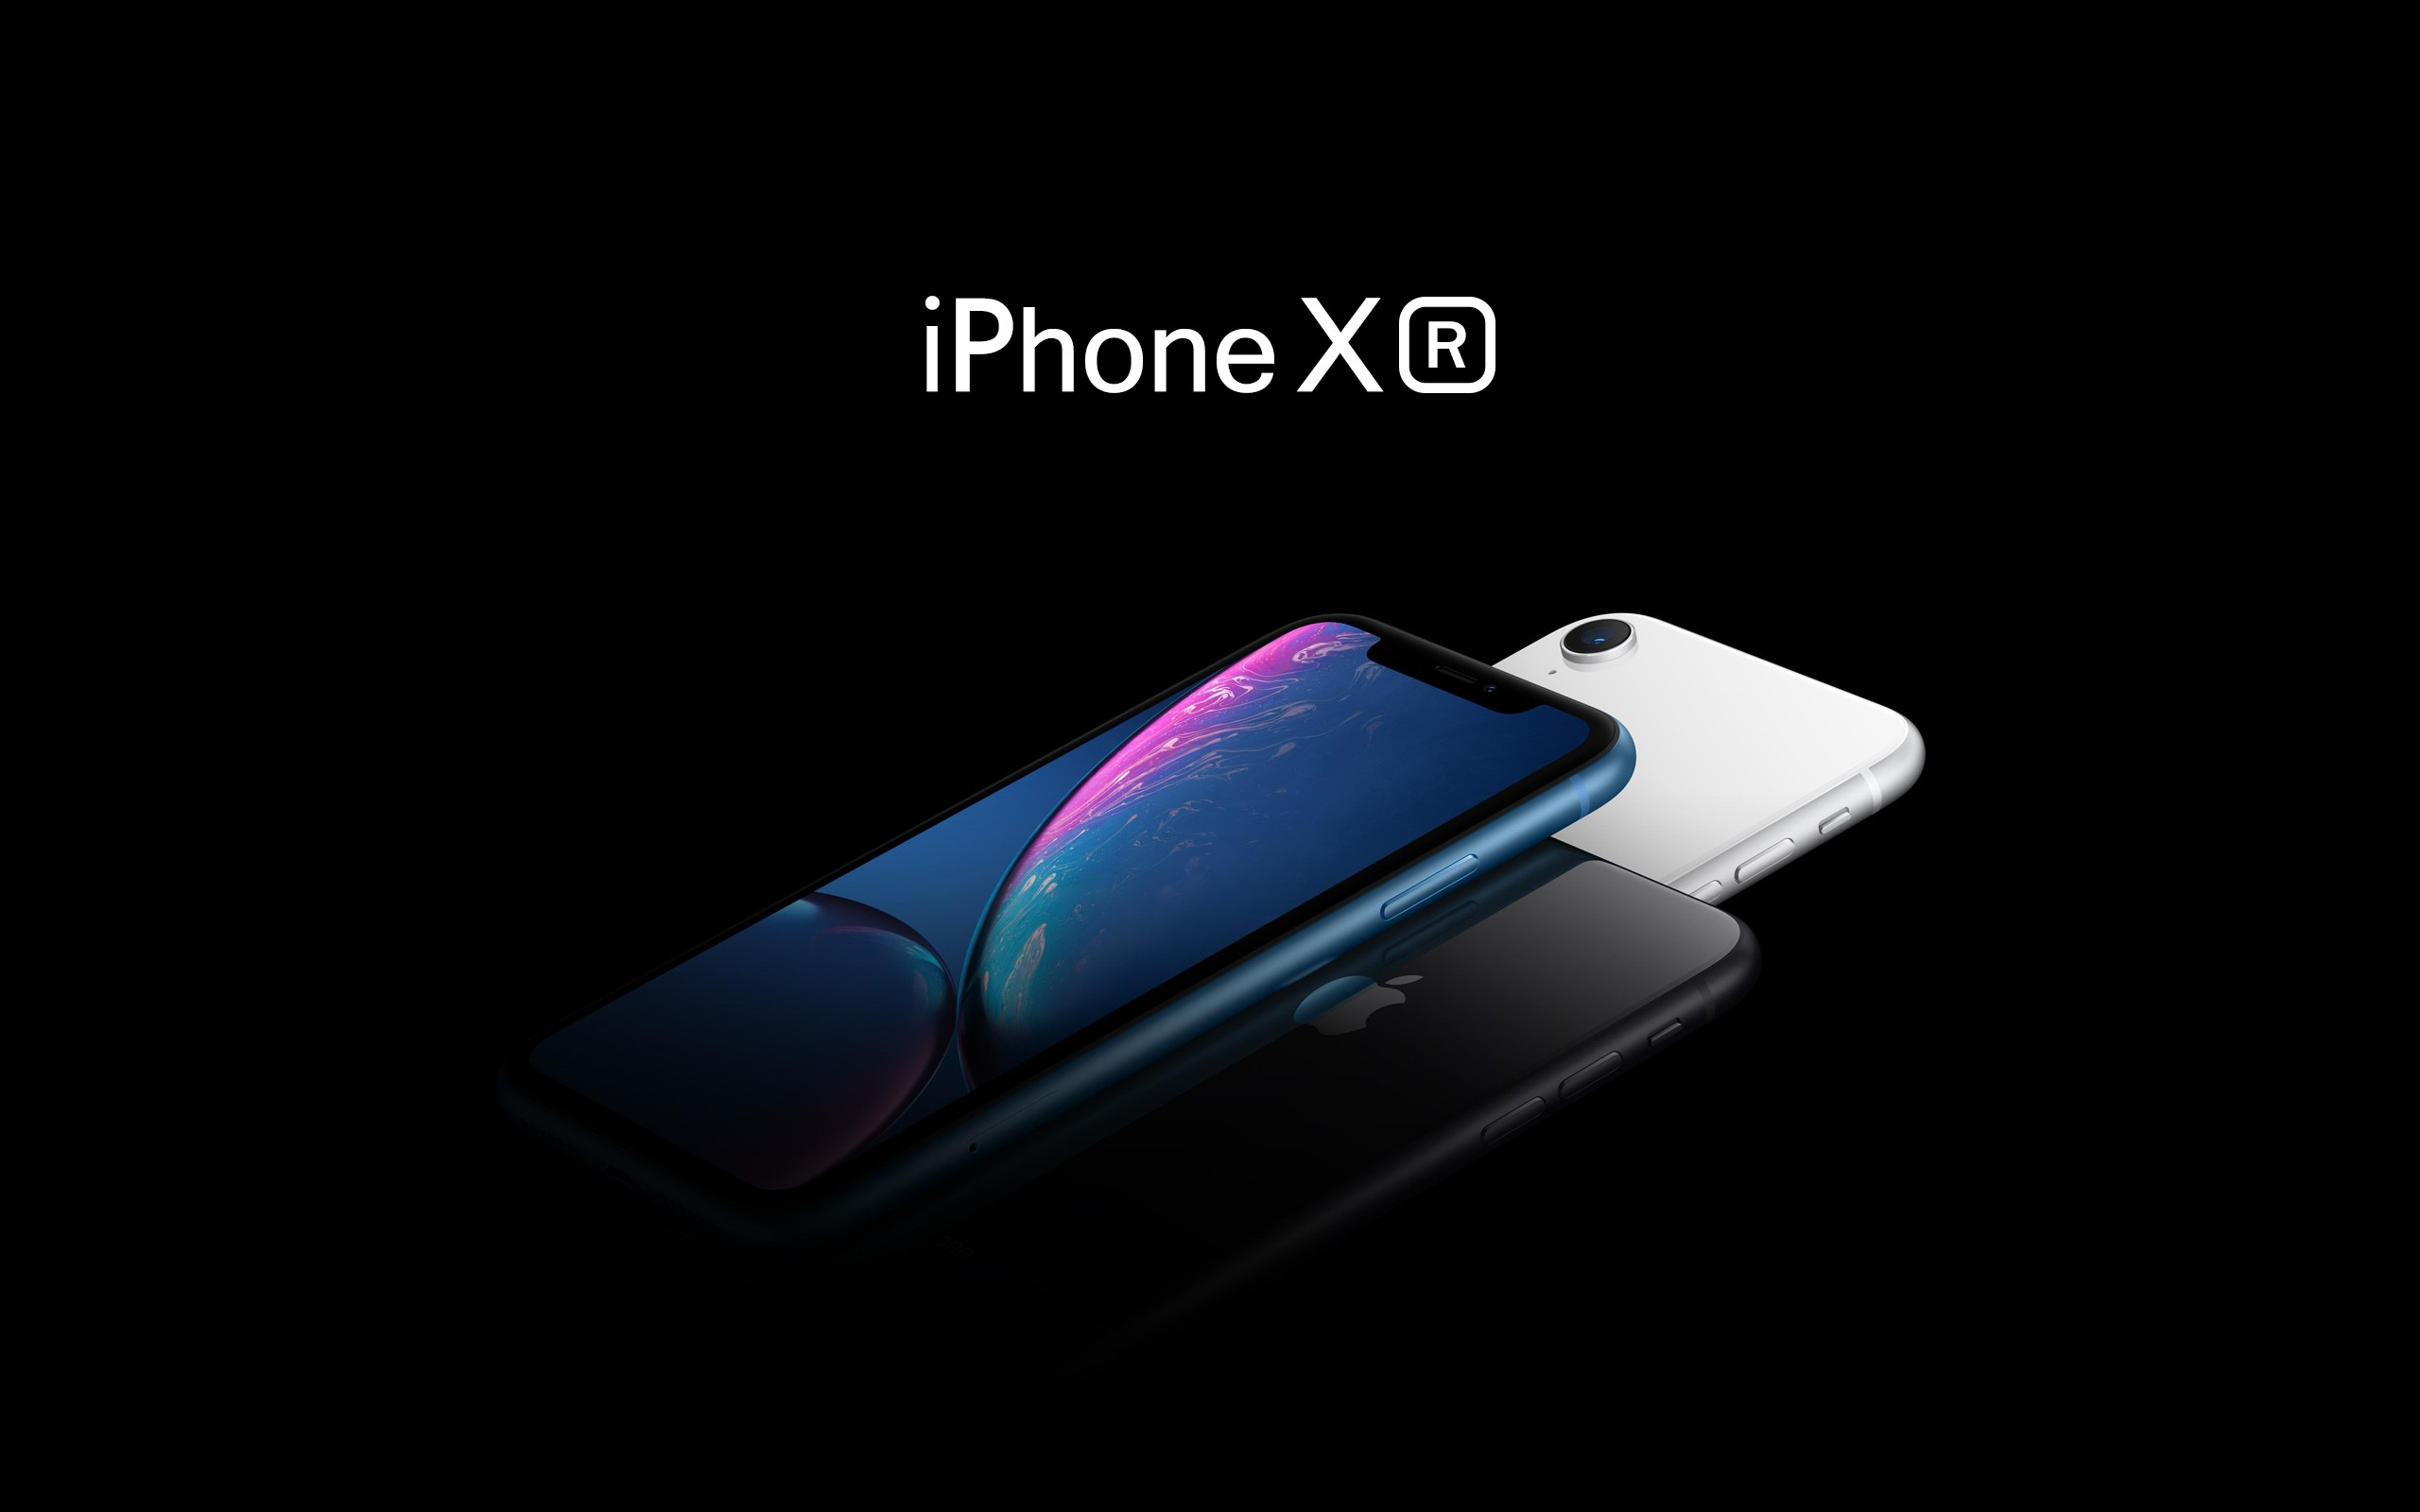 Apple 2018 iPhone XR Newest Smartphone Wallpaper Background 2560x1600